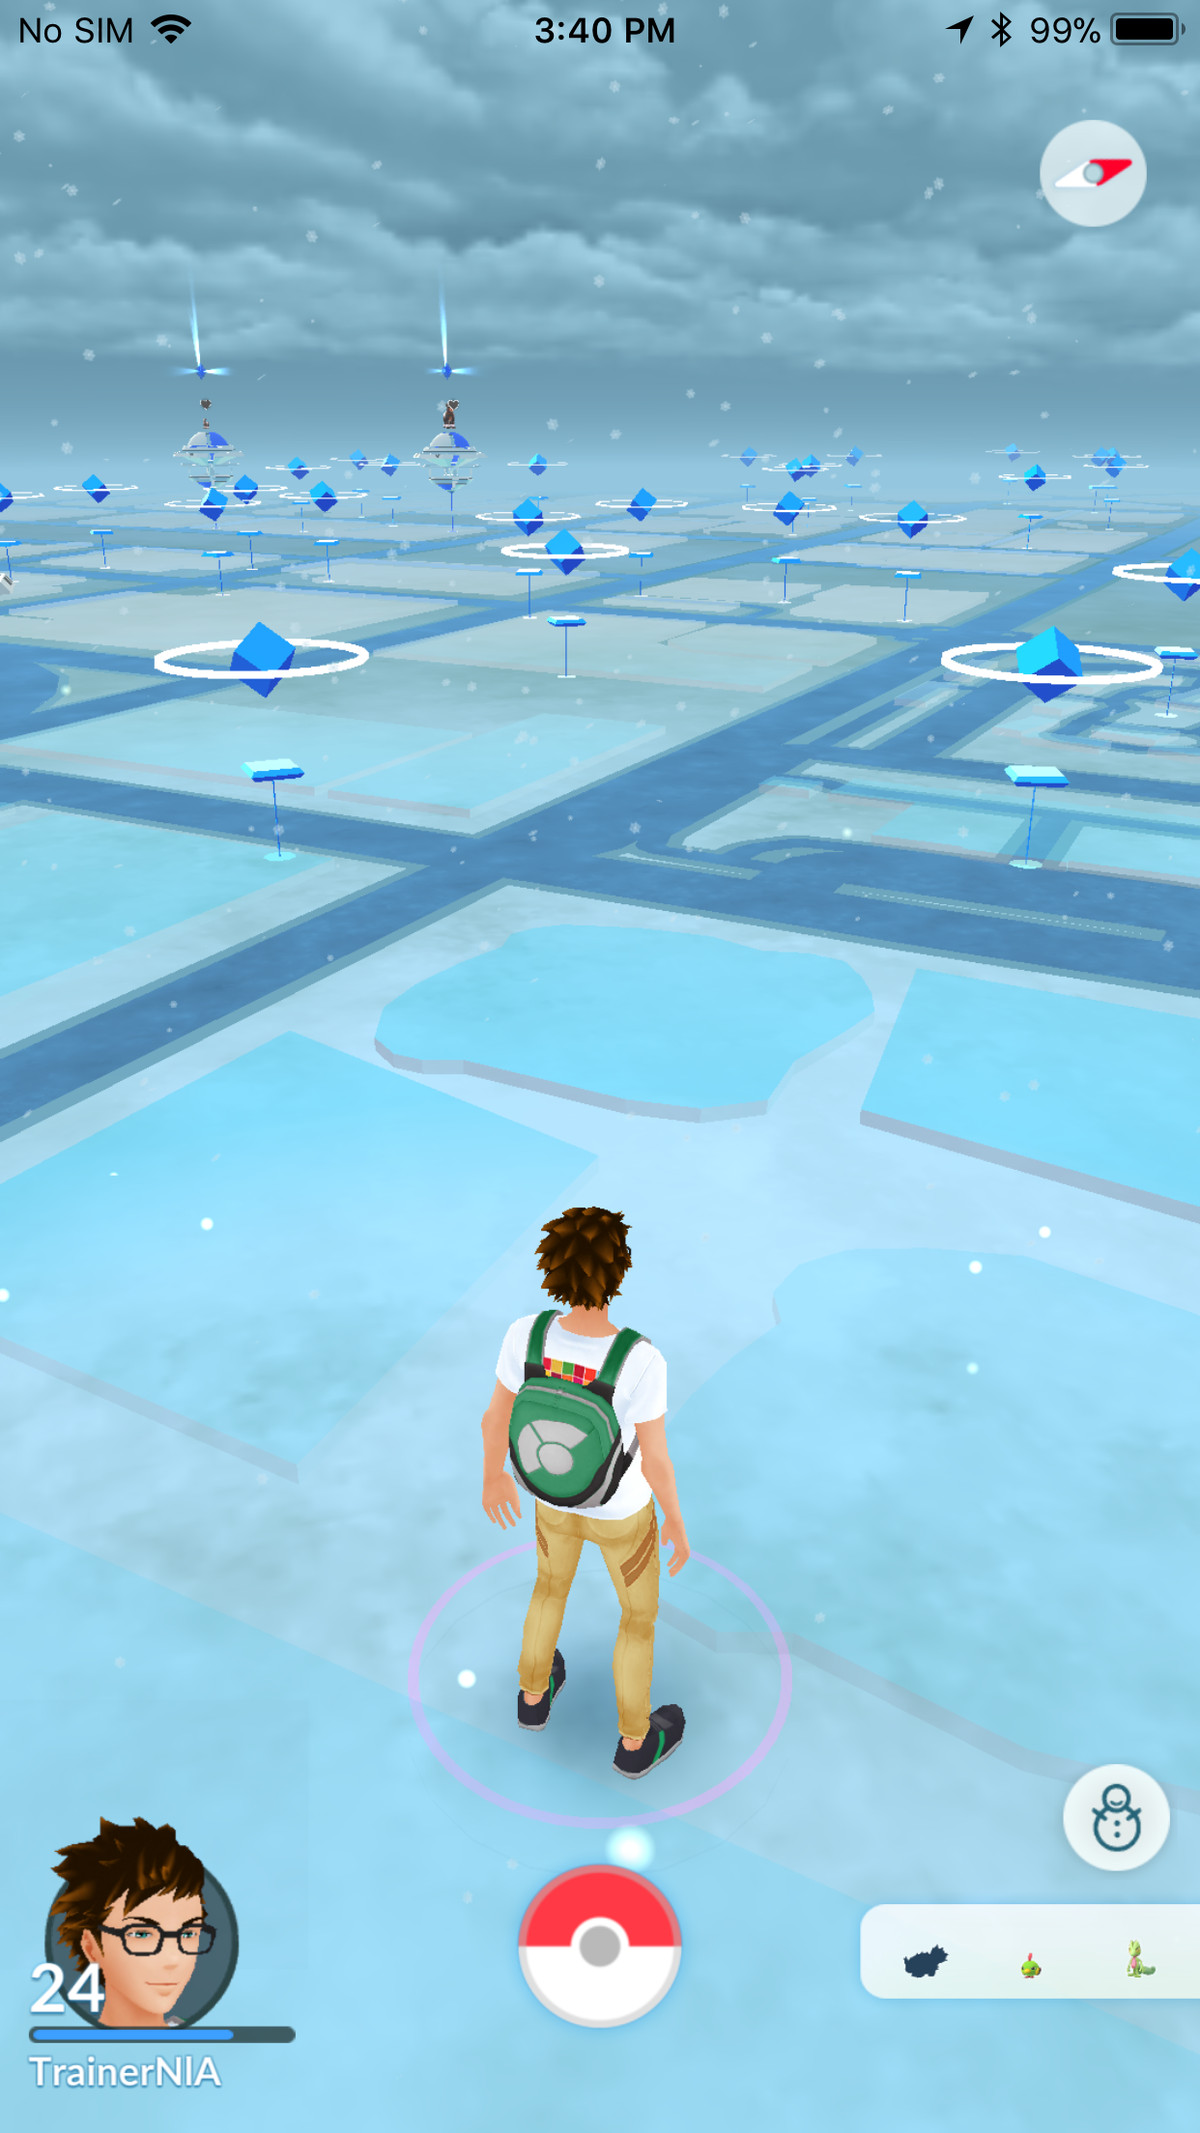 Pokémon Go is getting dynamic real-world weather and 50 new